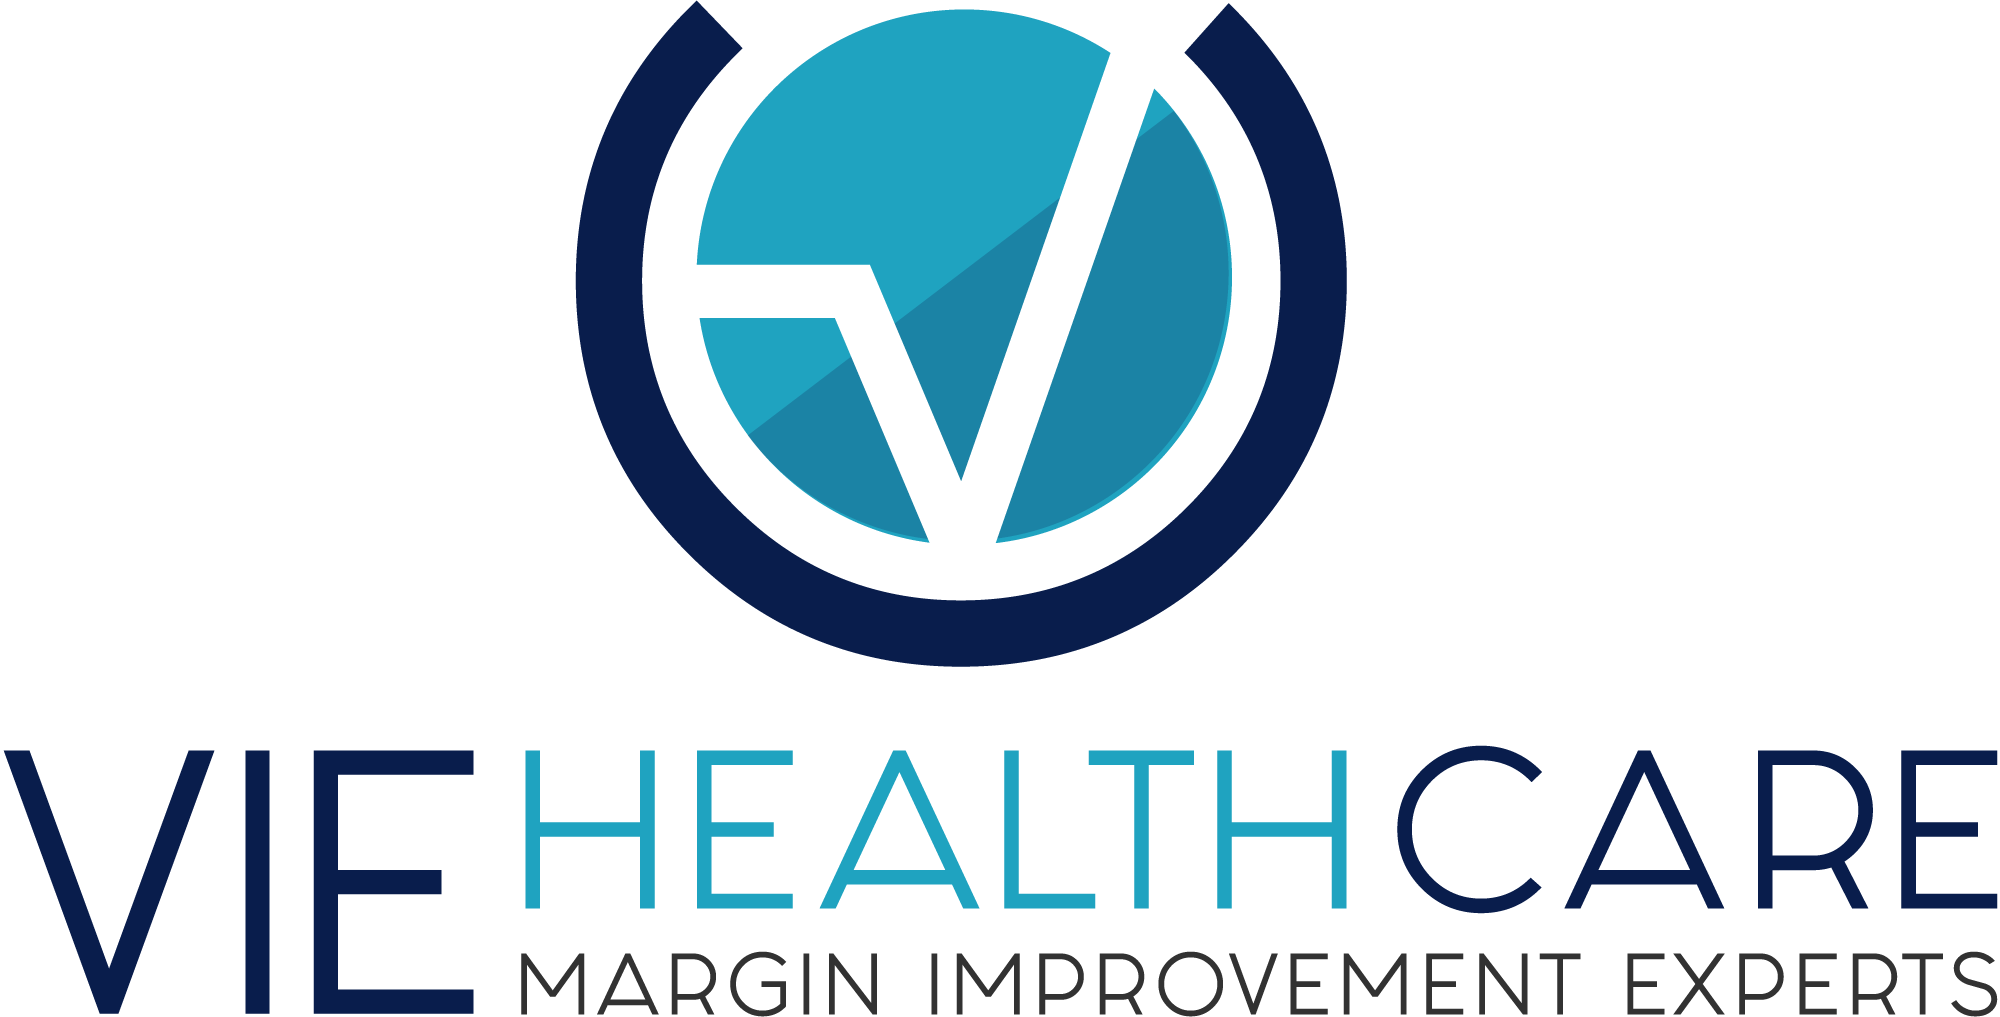 Logo VIE Healthcare is a company providing intelligent invoice analytics for hospital based on the software Invoice ROI and IRISXtract.